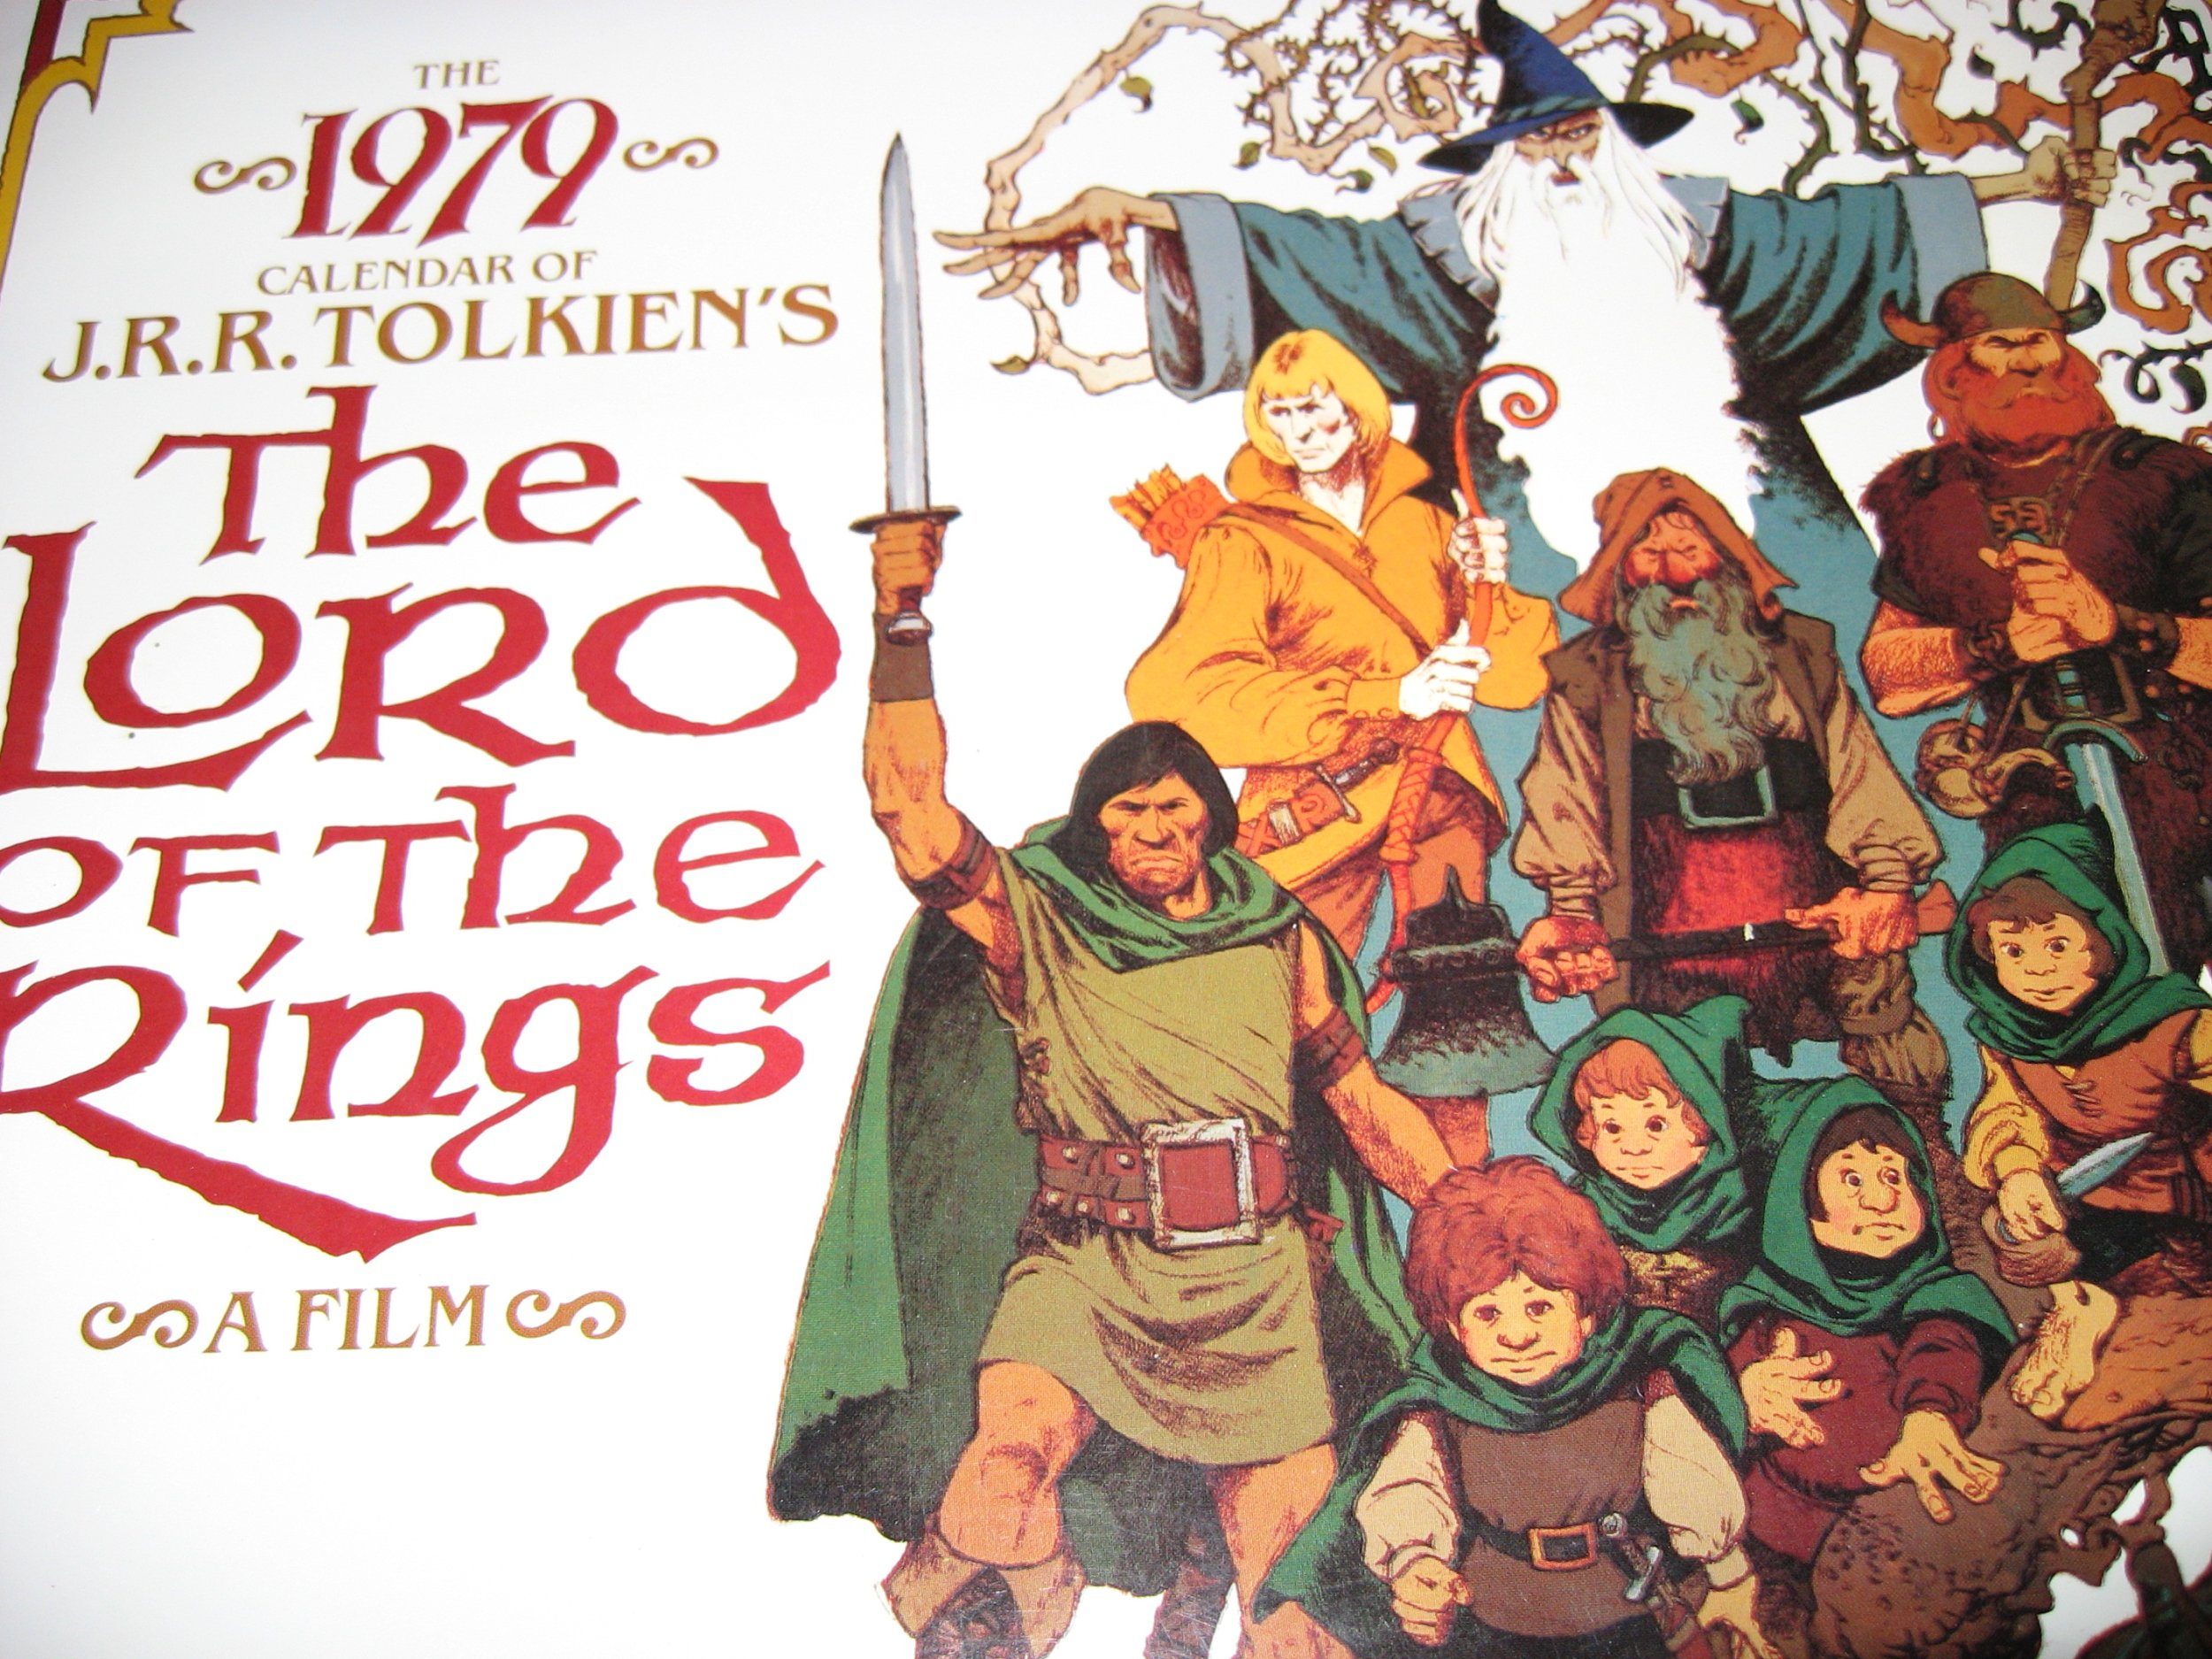 Beautiful 1979 J.R.R. Tolkien Lord of the Rings Calendar, featuring artwork from Ralph Bashki's 1979 Animated Lord of the Rings Movie (Lord of the Rings), J.R.R. Tolkien